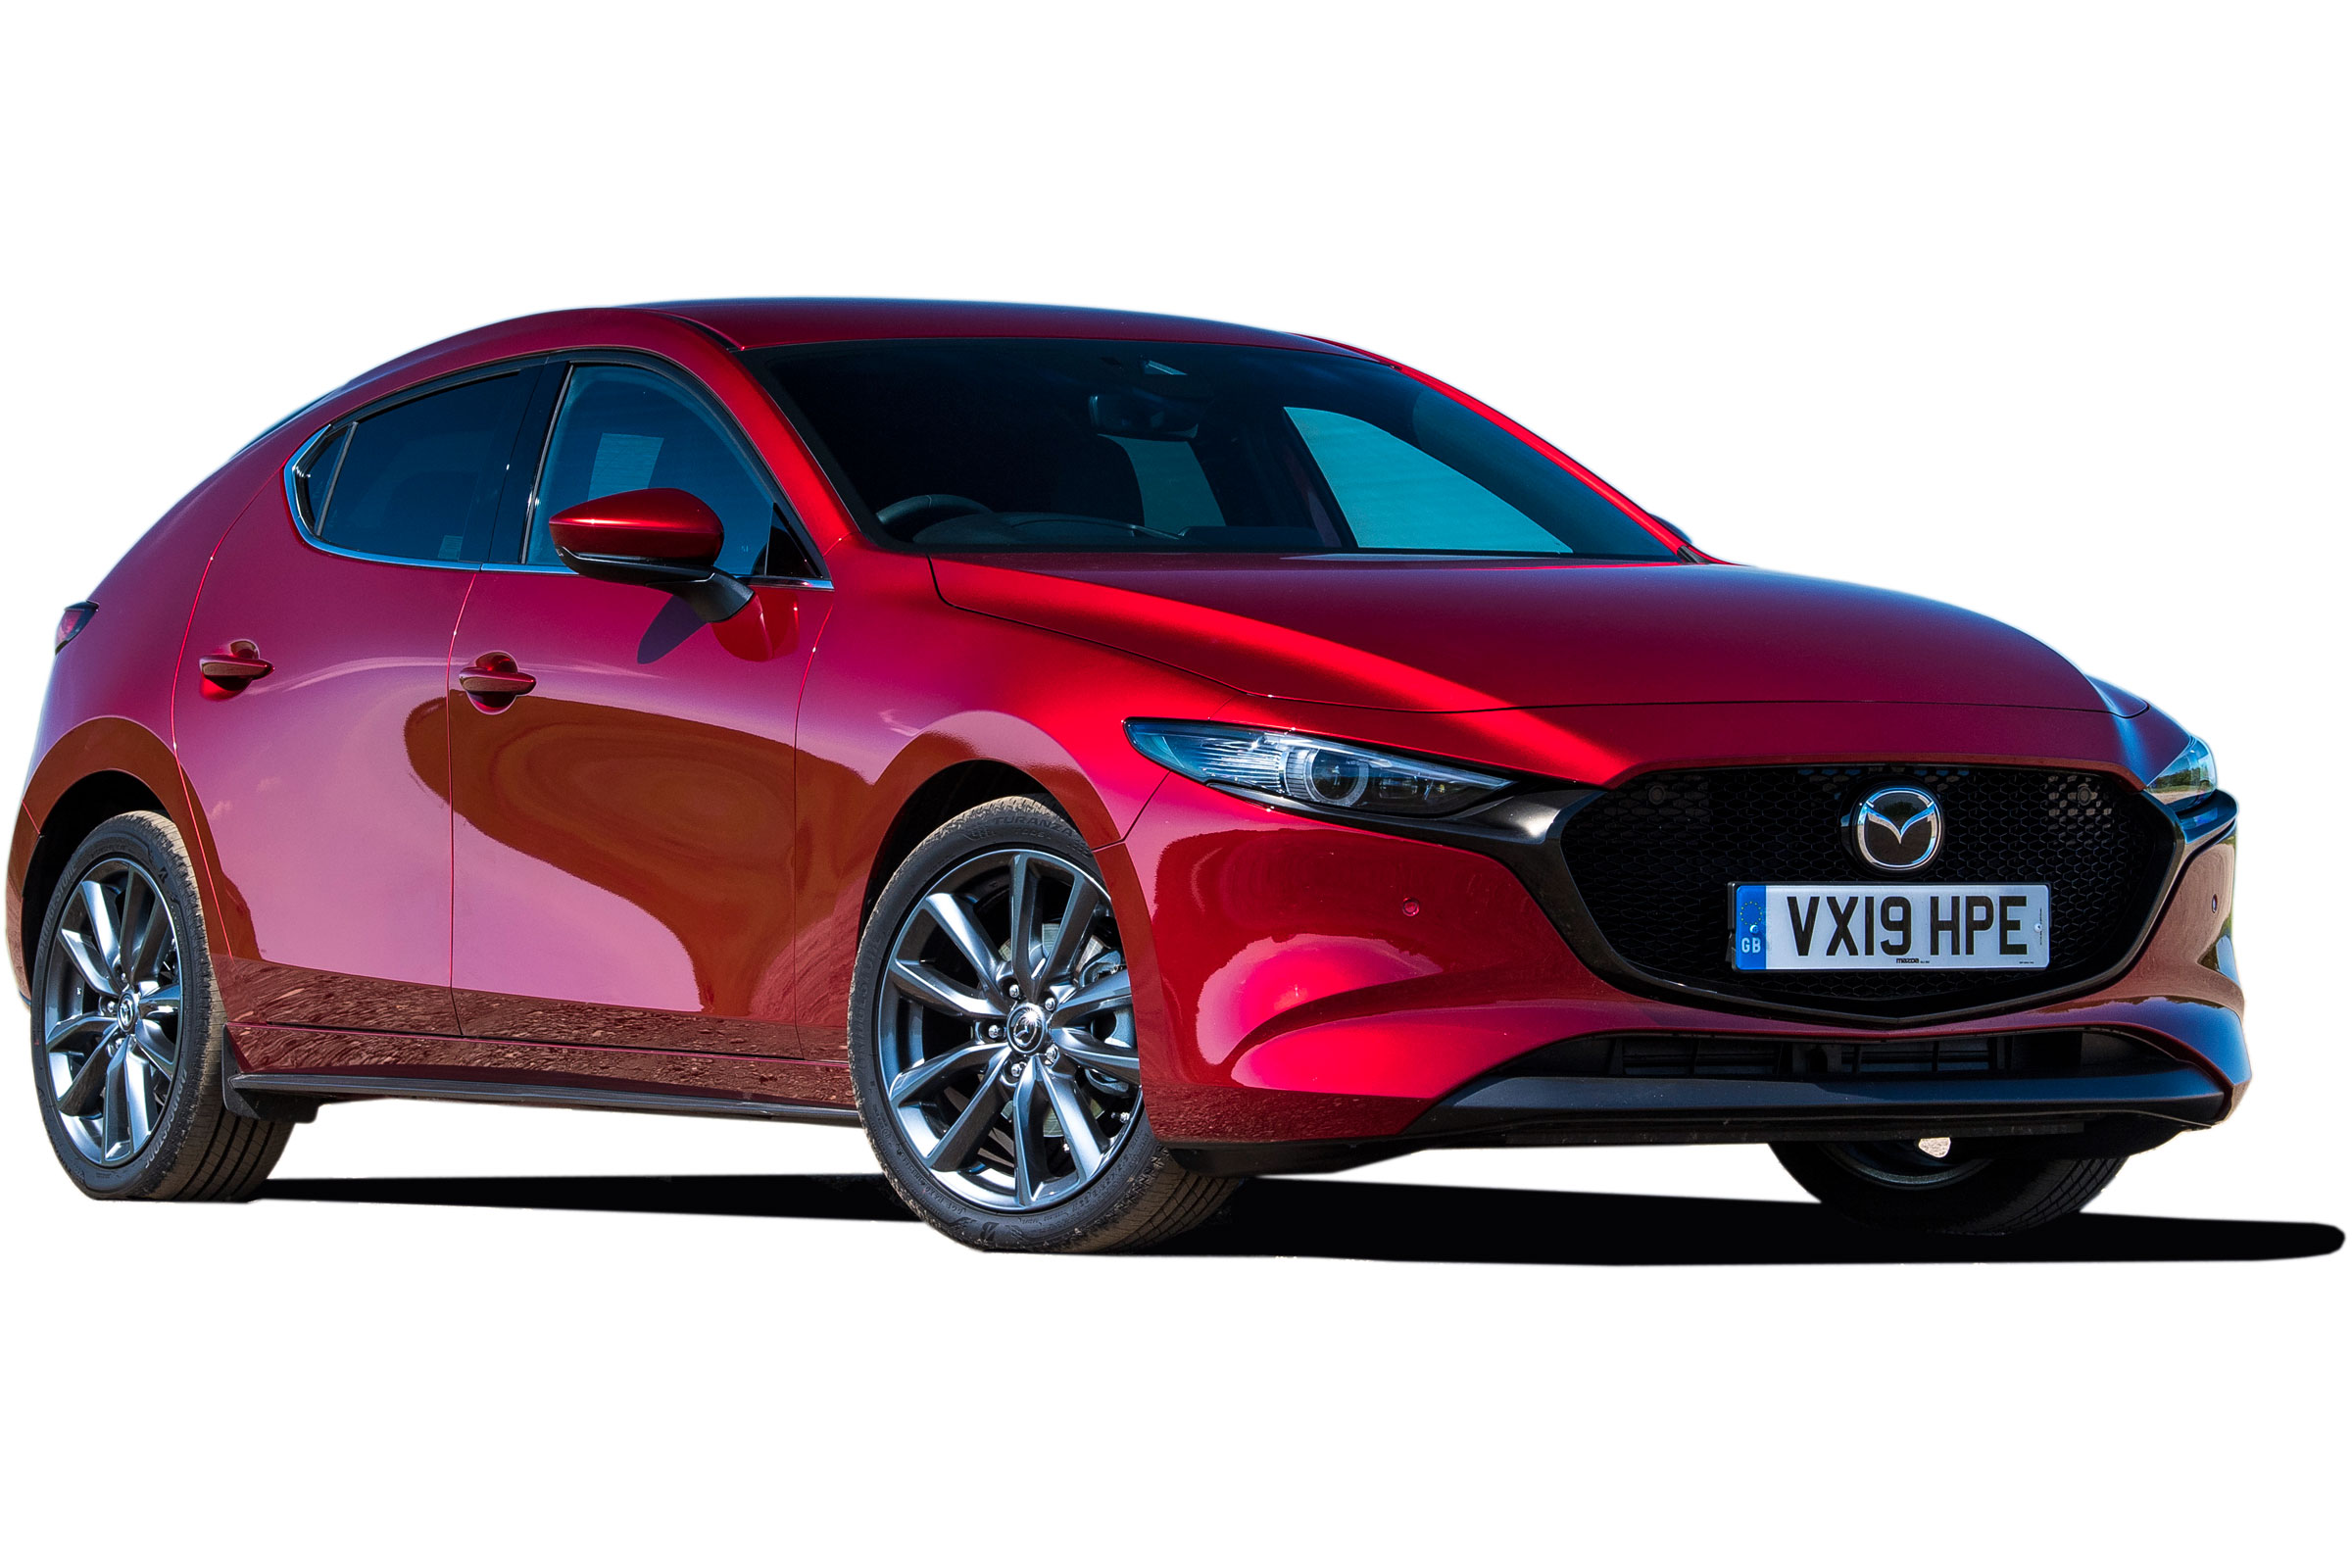 Mazda3 Hatchback Engines Drive Performance 2020 Review Carbuyer